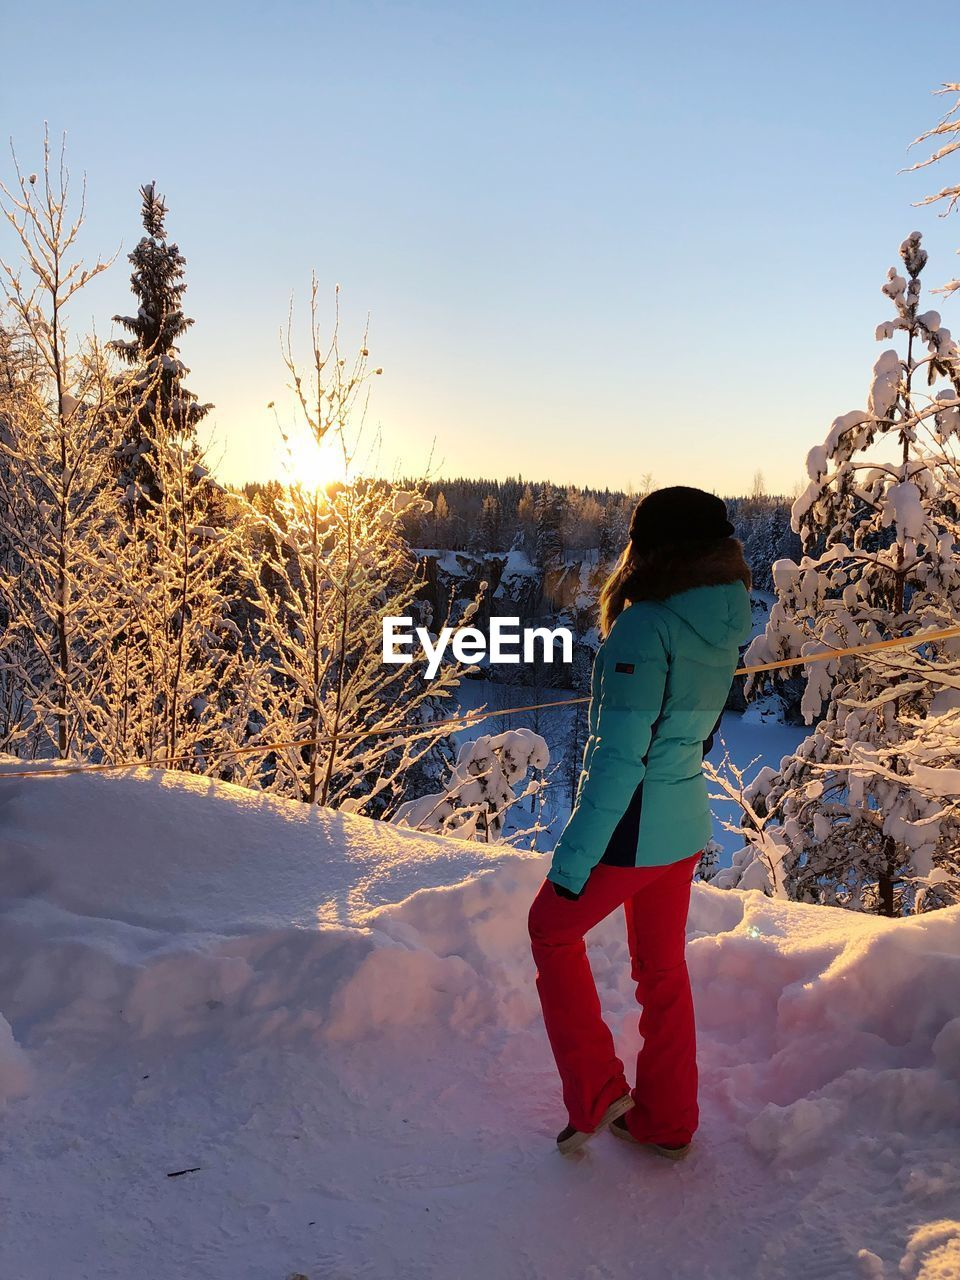 snow, winter, cold temperature, one person, real people, field, sky, leisure activity, lifestyles, land, full length, nature, beauty in nature, tree, women, rear view, plant, covering, clothing, warm clothing, outdoors, extreme weather, hairstyle